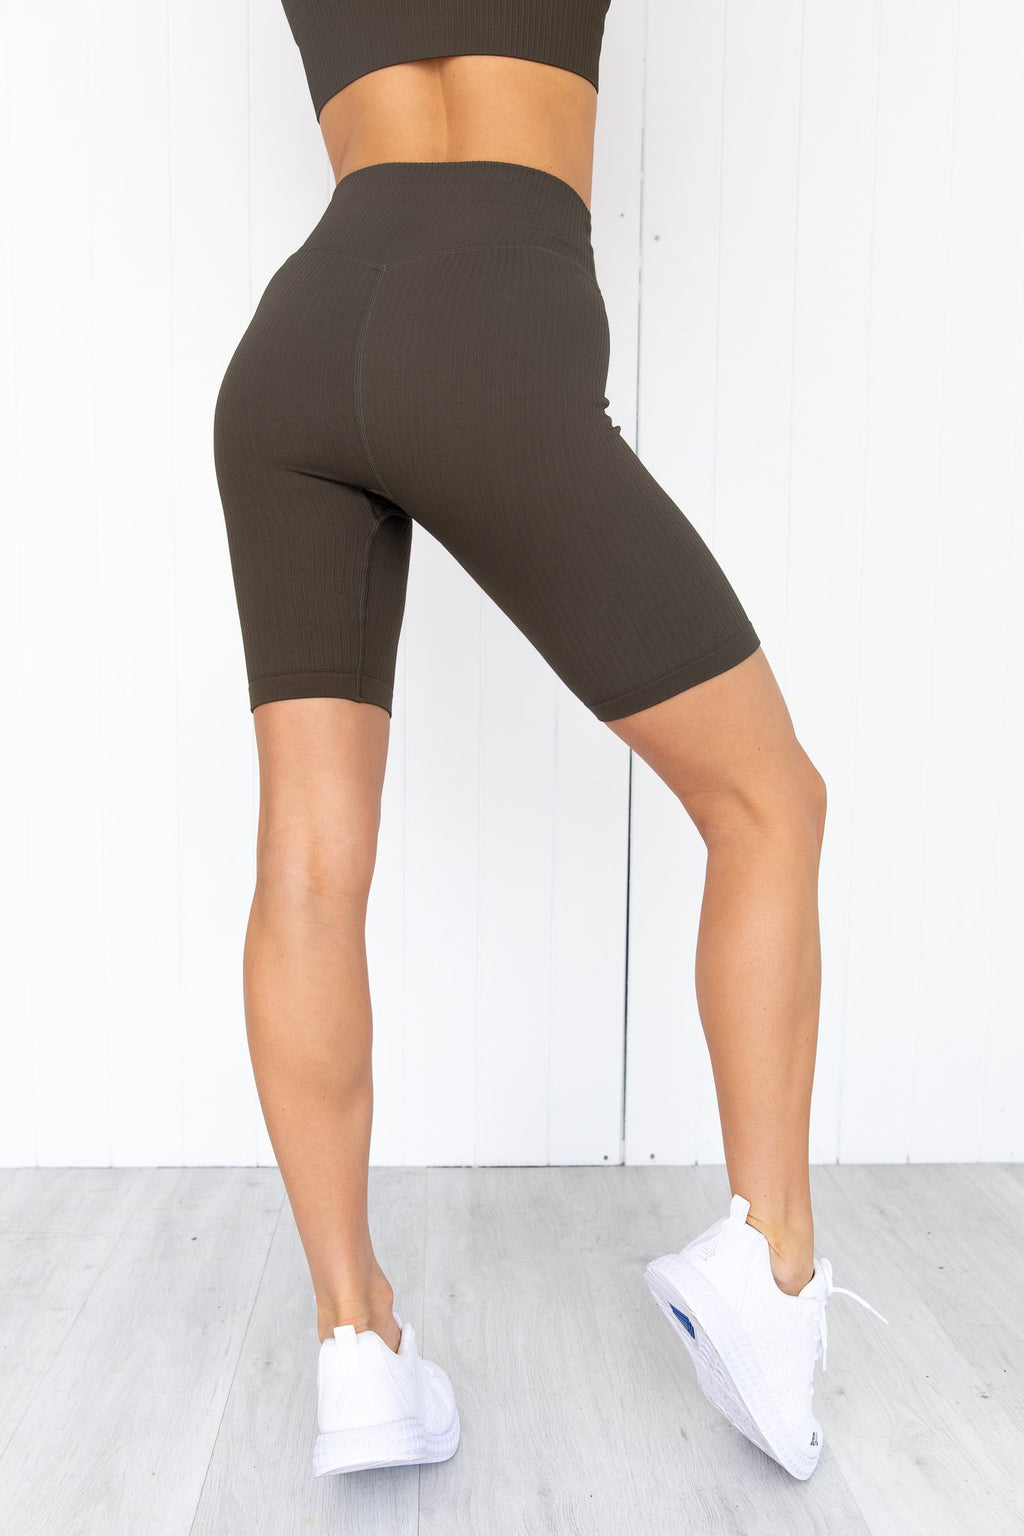 Khaki Ribbed Seamless Bike Shorts